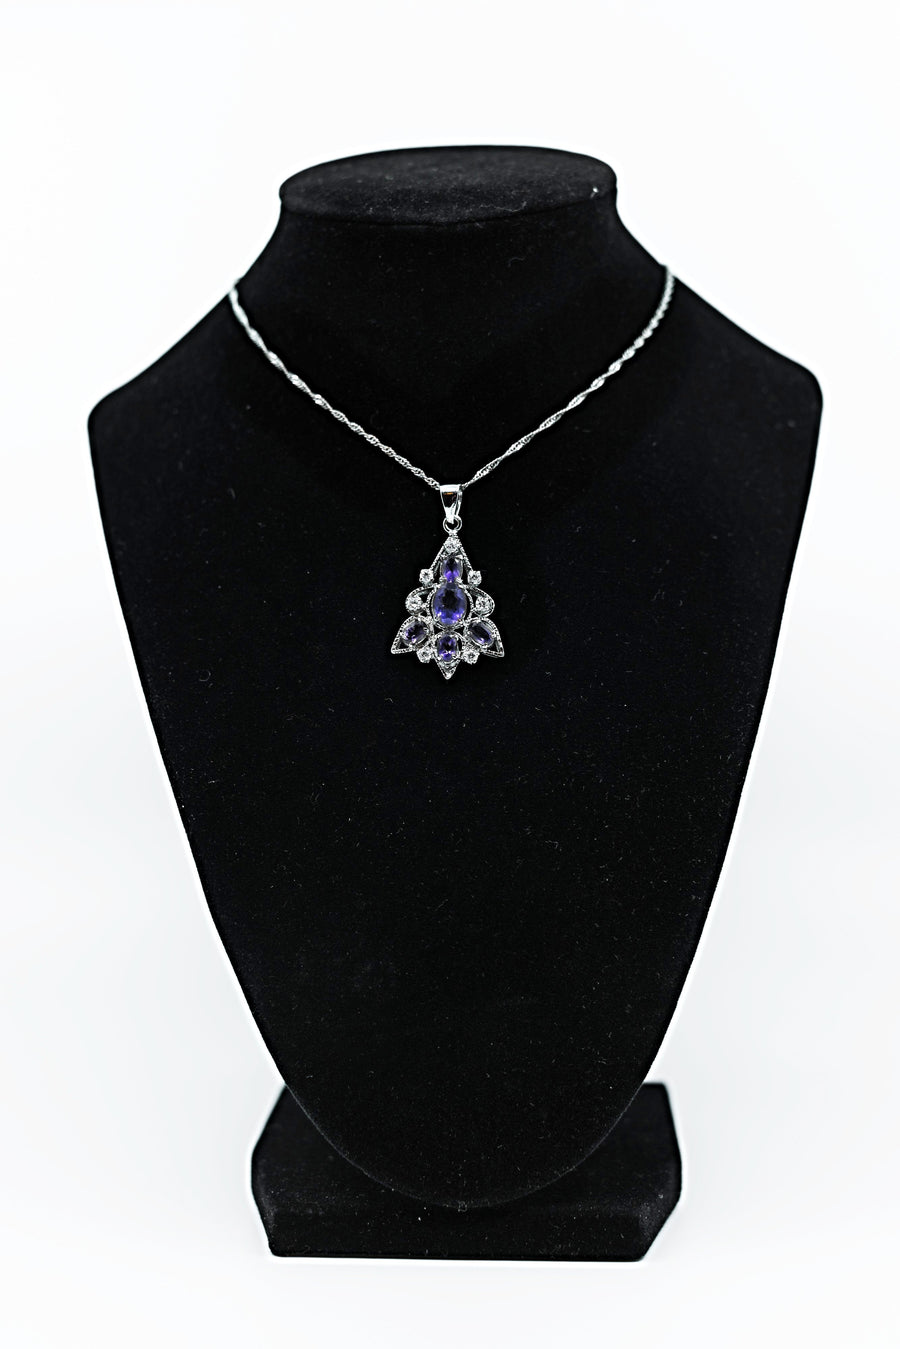 Purple Amathus Graduate Leaf Pendant with White Sterling Silver